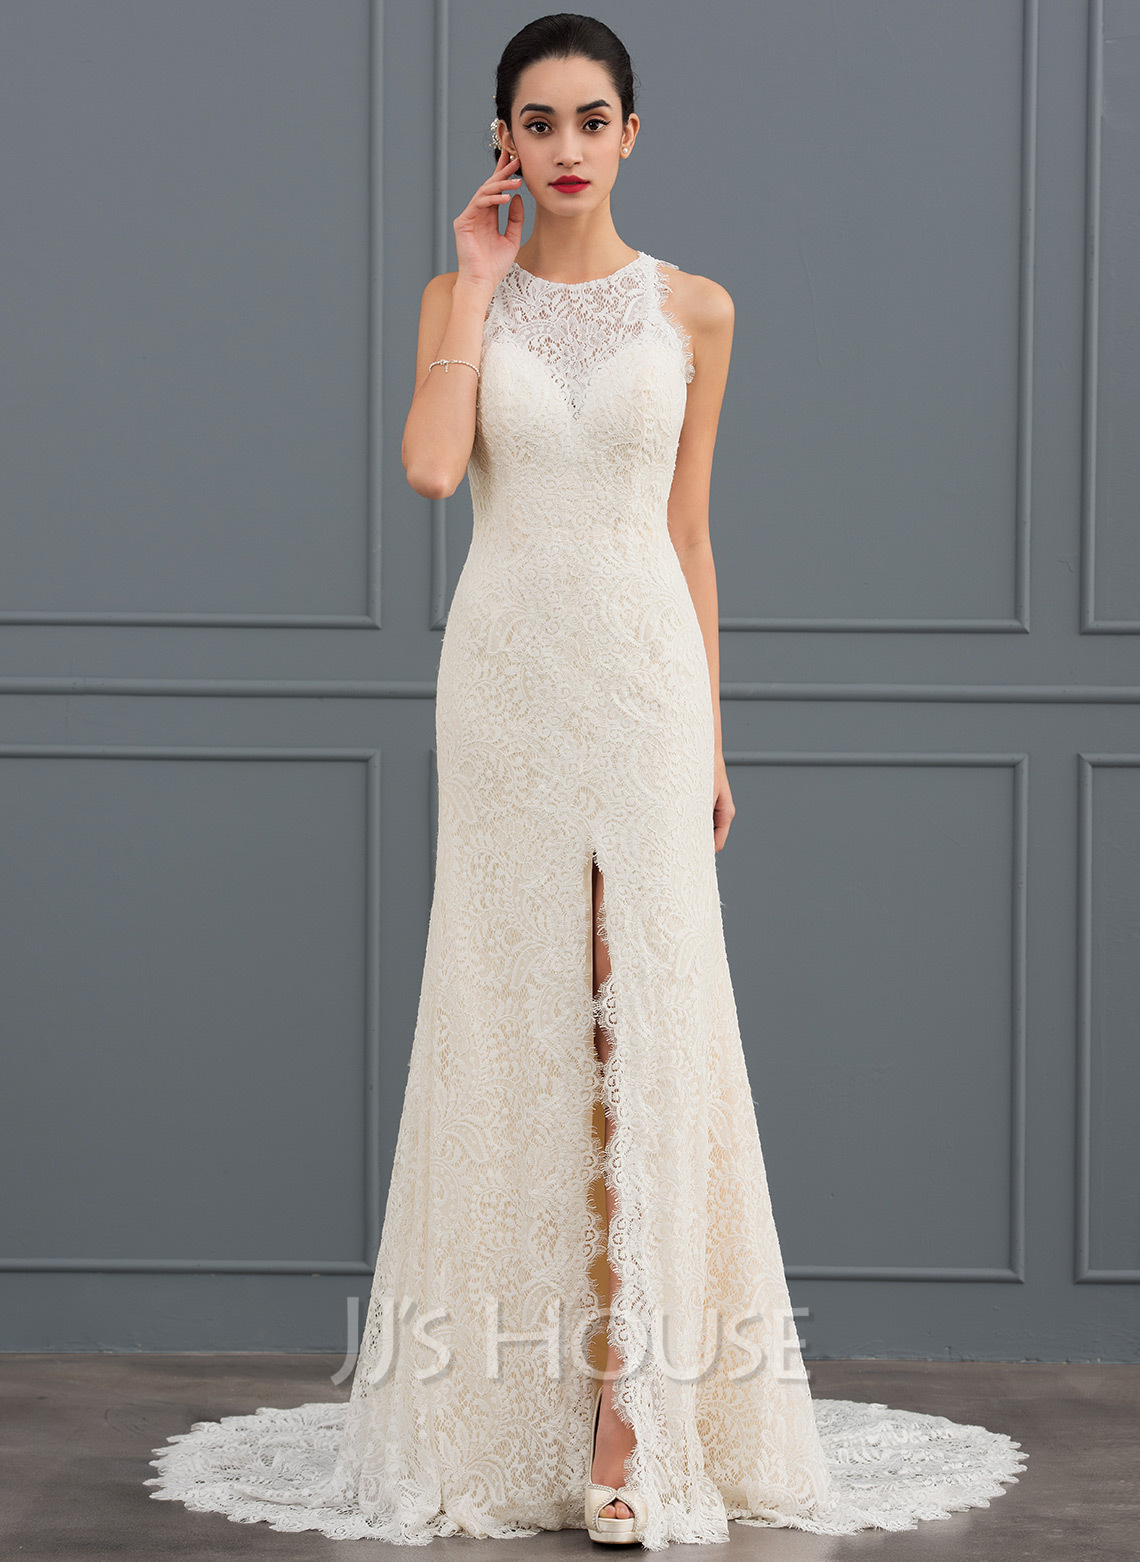 b117a7535f1 Sheath/Column Scoop Neck Court Train Lace Wedding Dress (002127263 ...